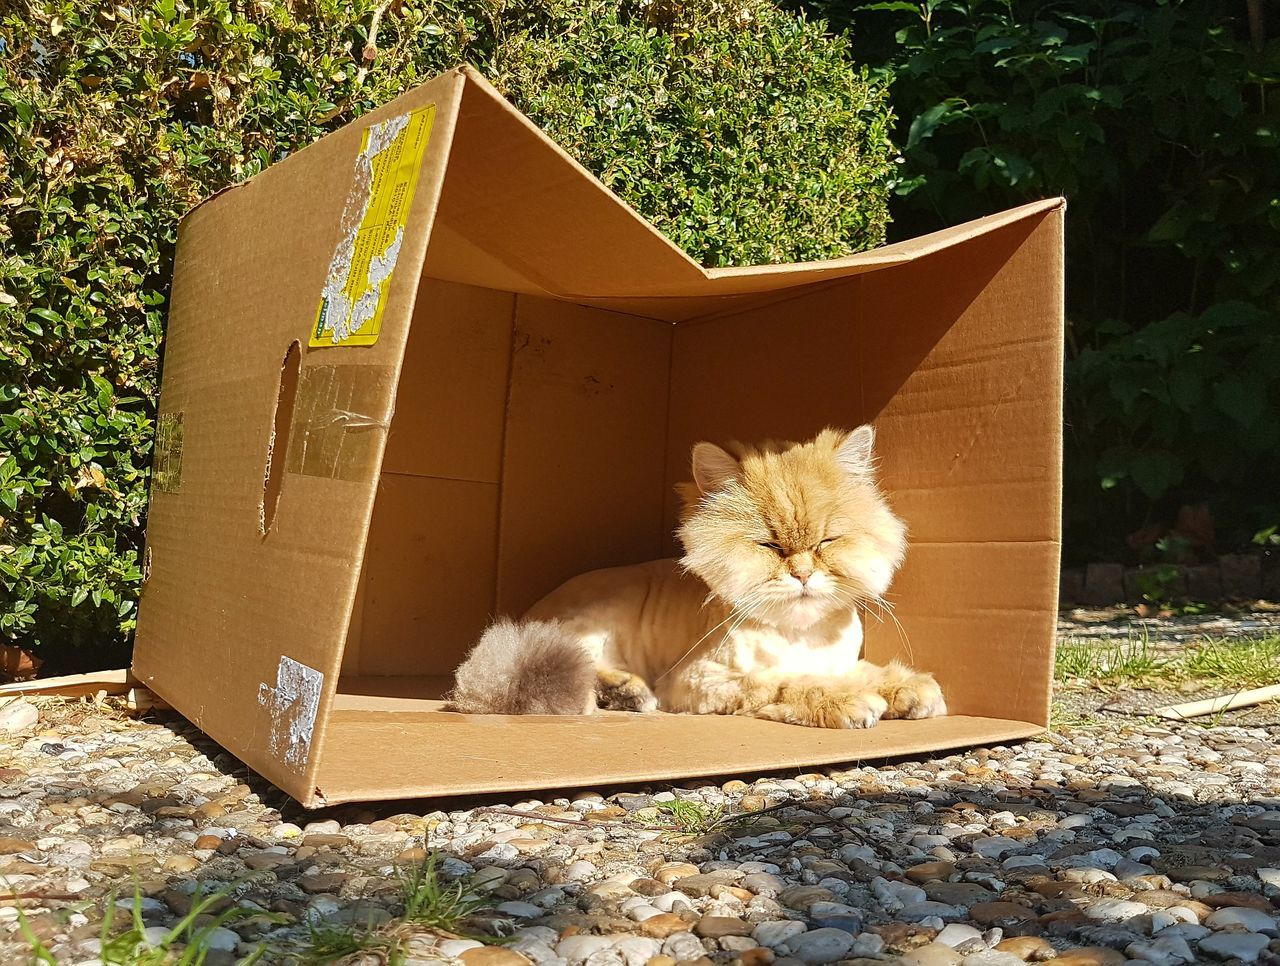 Domestic Cat Outdoors Front Or Back Yard Cardboard Box No People Sunlight Day Mammal Pets Domestic Animals Animal Themes Nature Multi Colored Golden Shaded The Purist (no Edit, No Filter) Raw Photography British Shorthair Cat